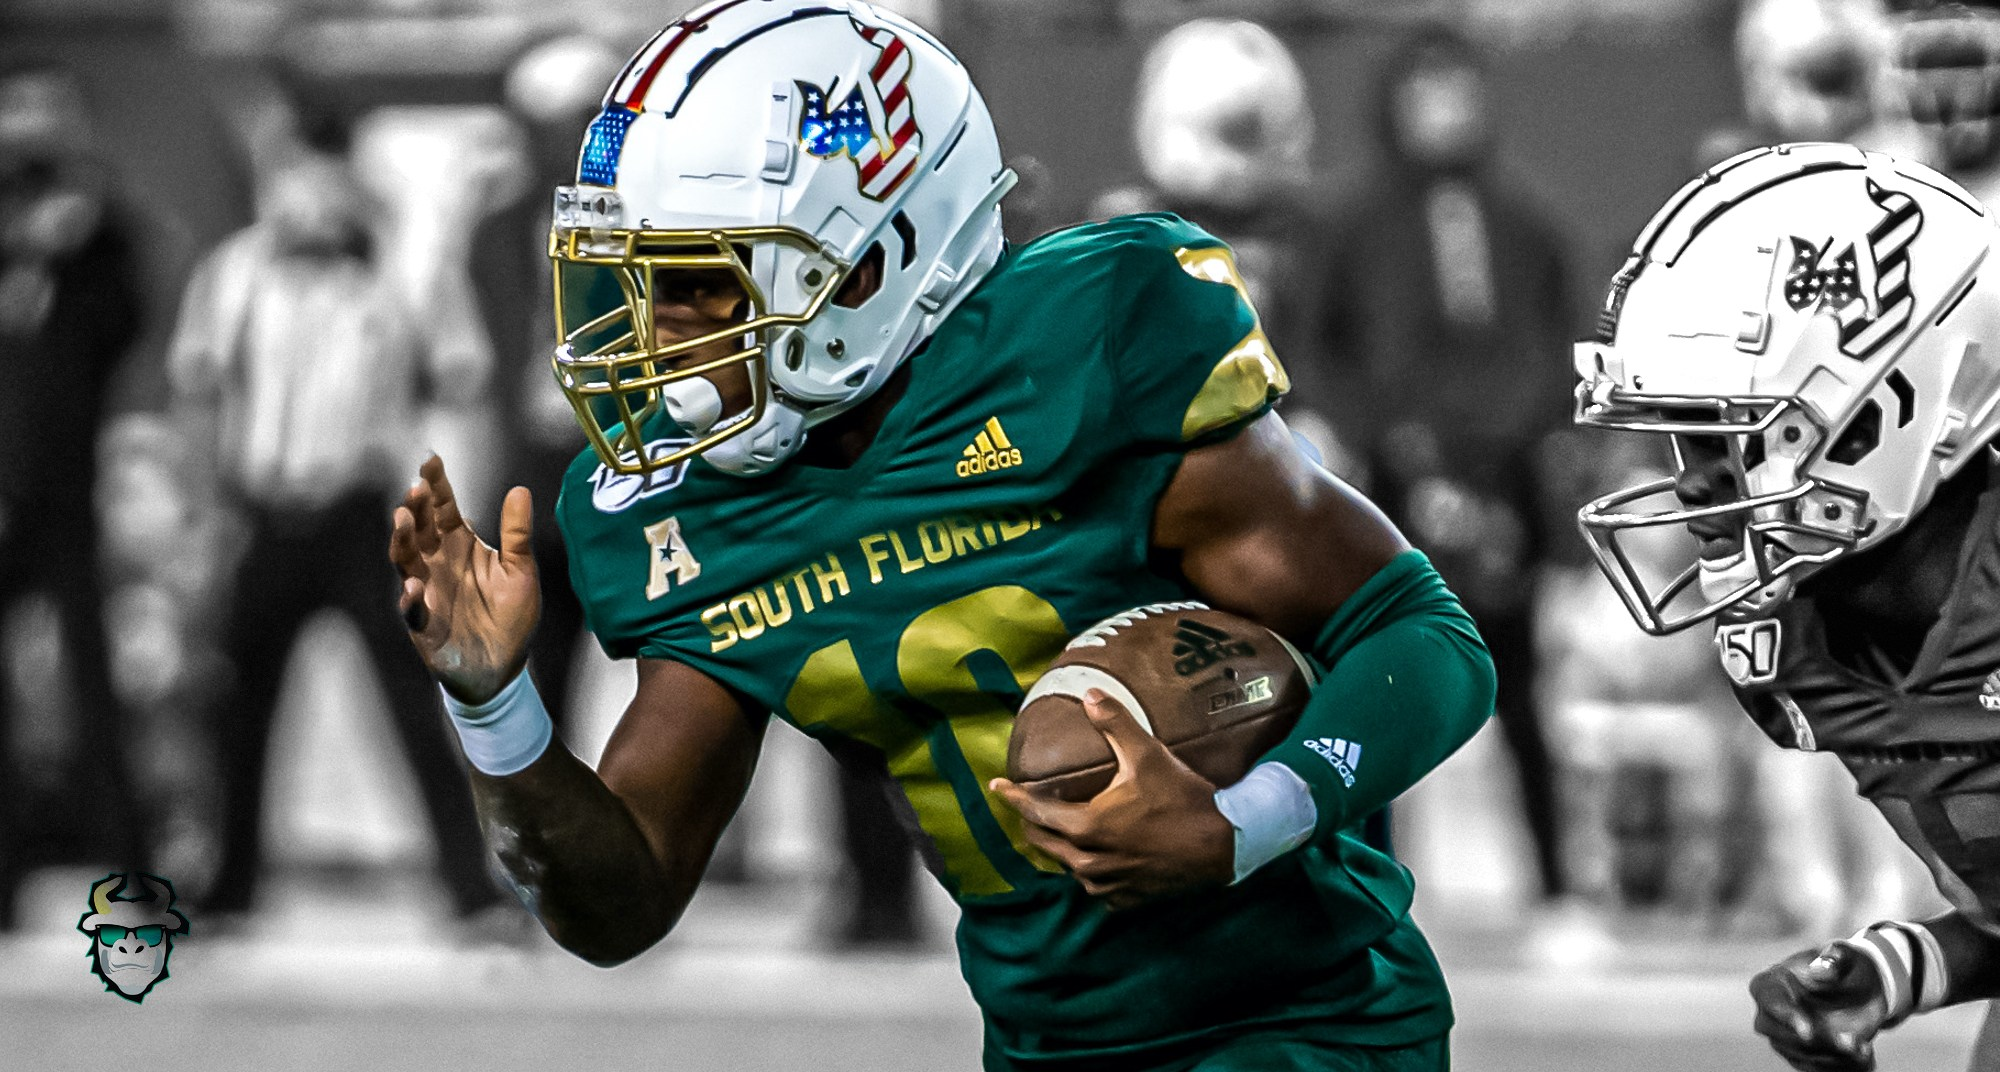 USF RB Kelley Joiner Jr